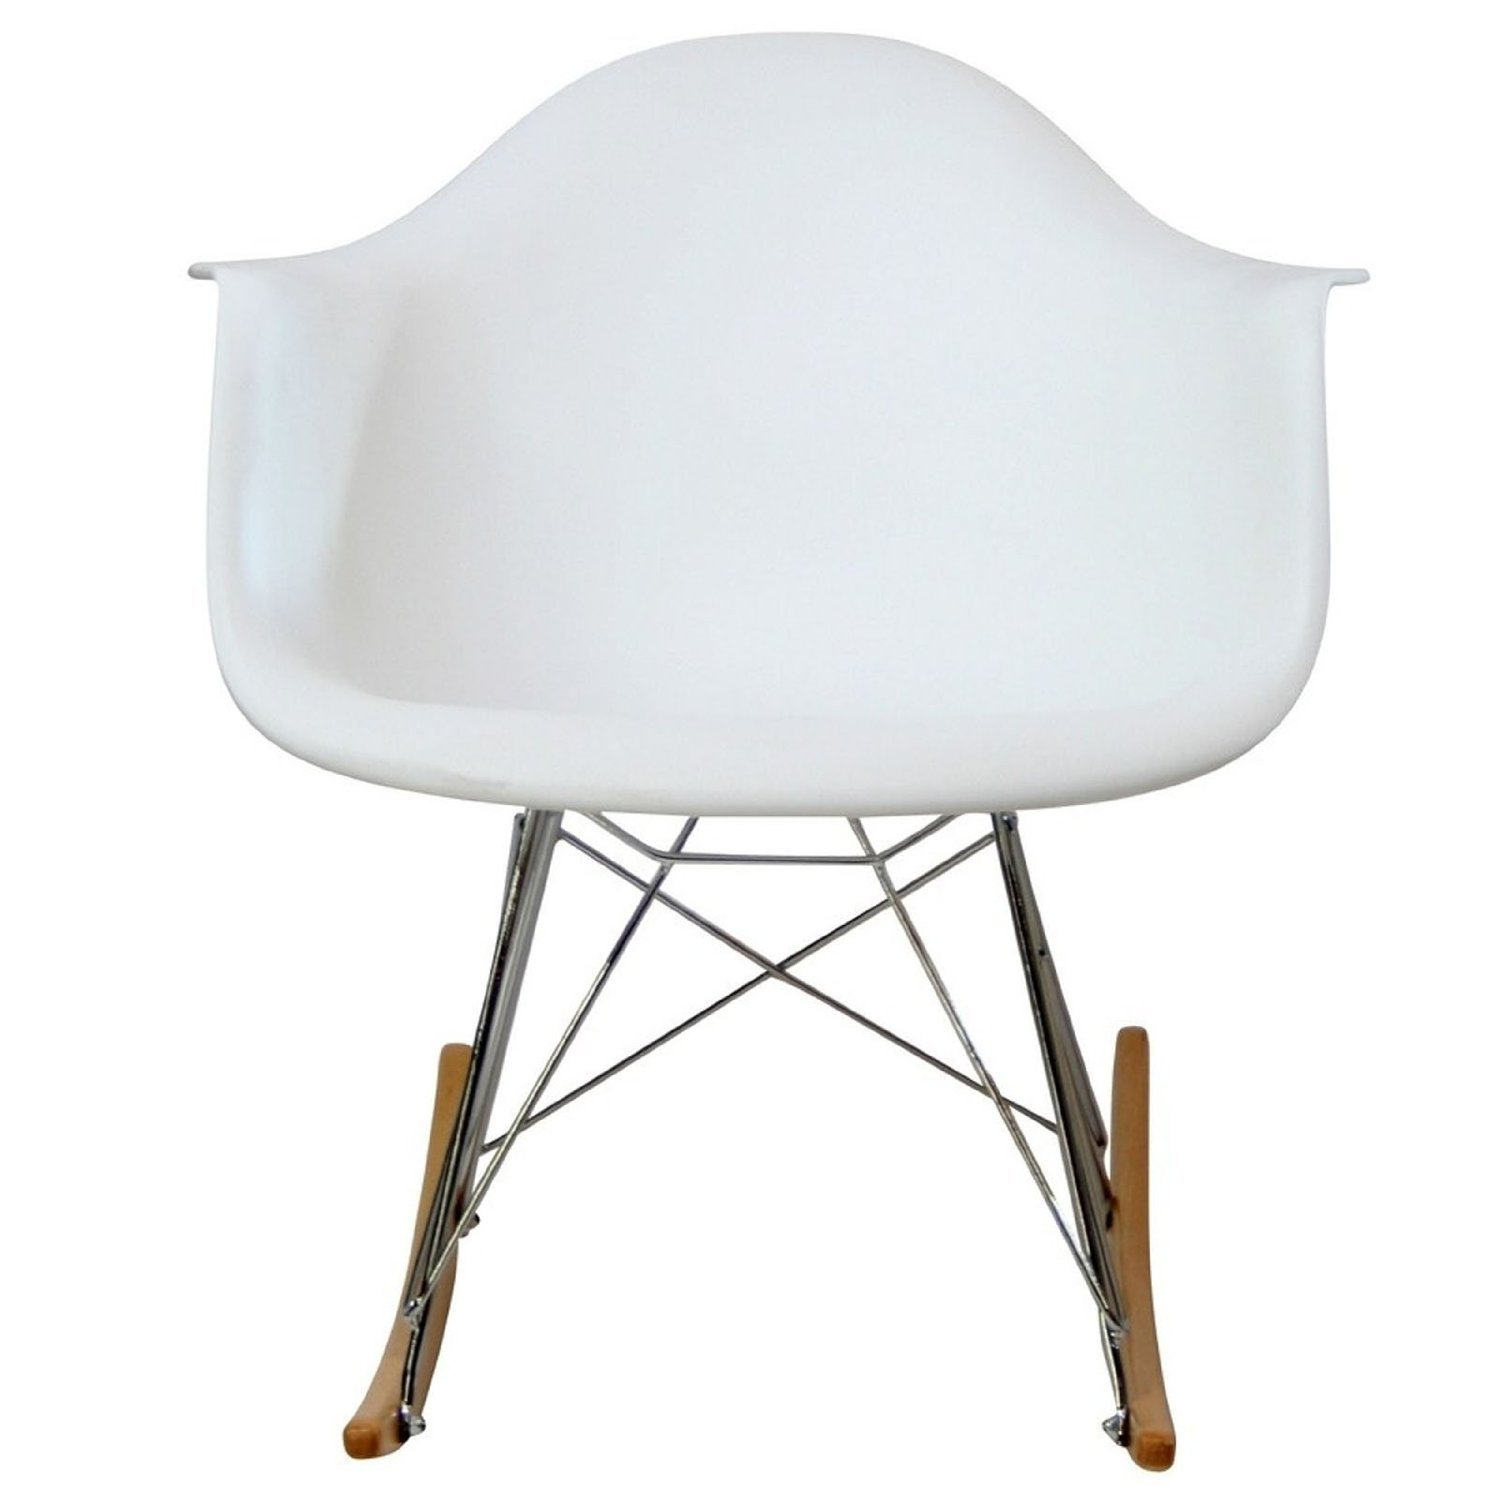 Eames Style Molded Modern Plastic Armchair Rocking Mid Century